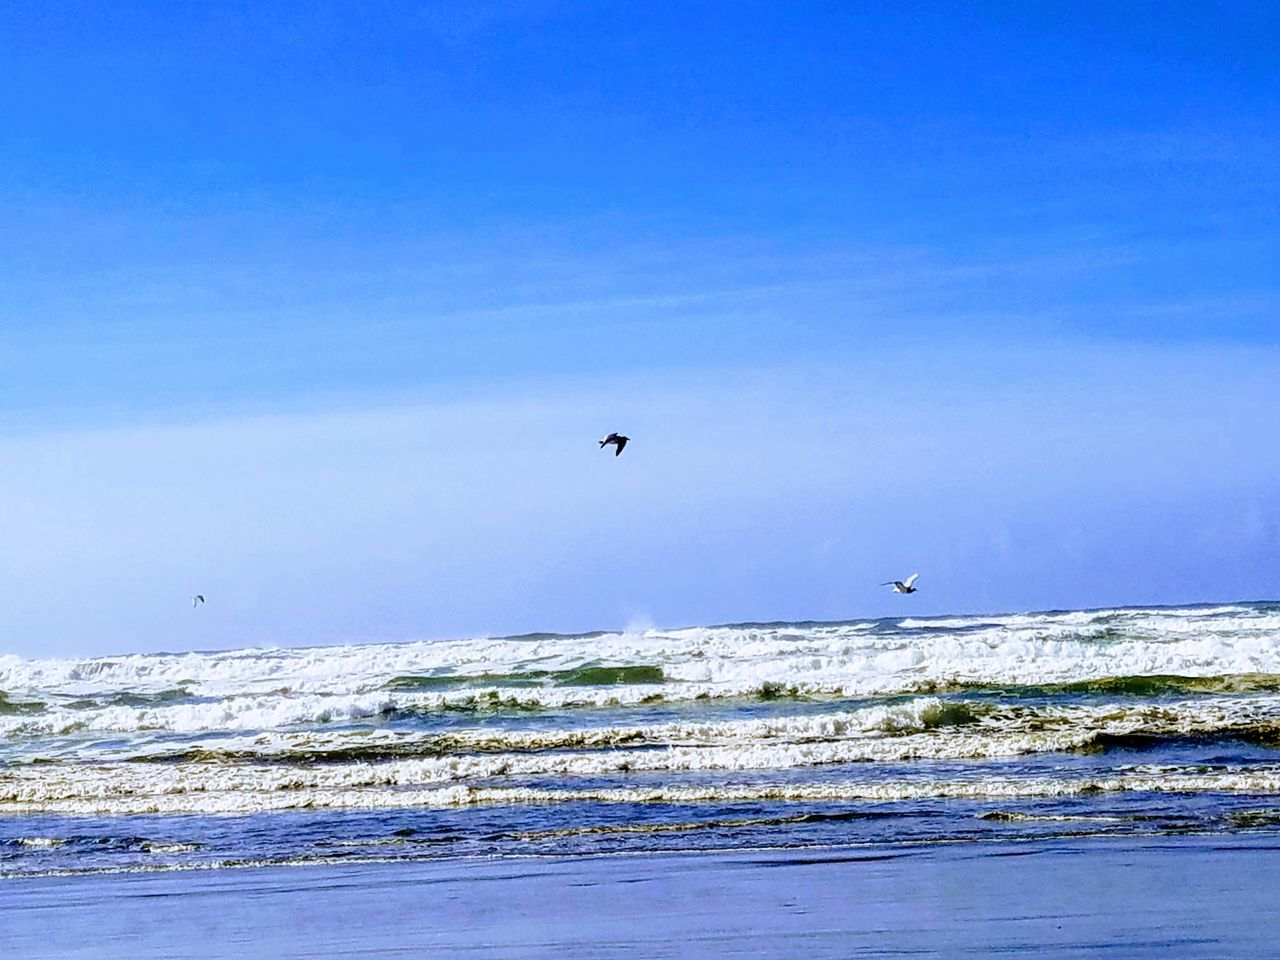 sea, water, sky, scenics - nature, beauty in nature, blue, animal themes, flying, land, animal, vertebrate, motion, wave, horizon over water, bird, day, beach, animal wildlife, animals in the wild, no people, outdoors